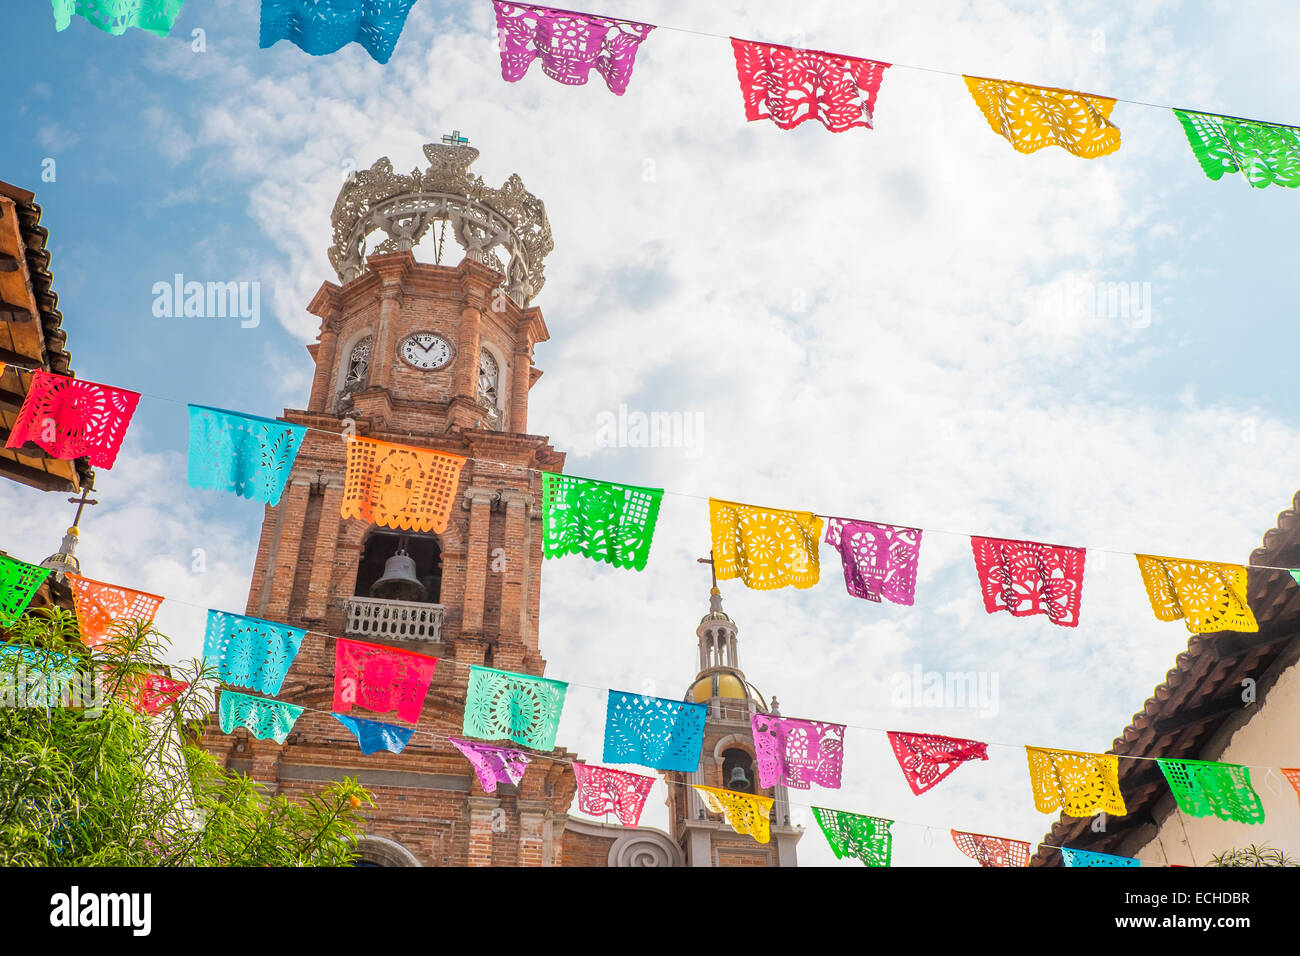 El Centro with Church of Our Lady of Guadalupe and colorful flag lines in front. Downtown Puerto Vallarta, Jalisco, - Stock Image